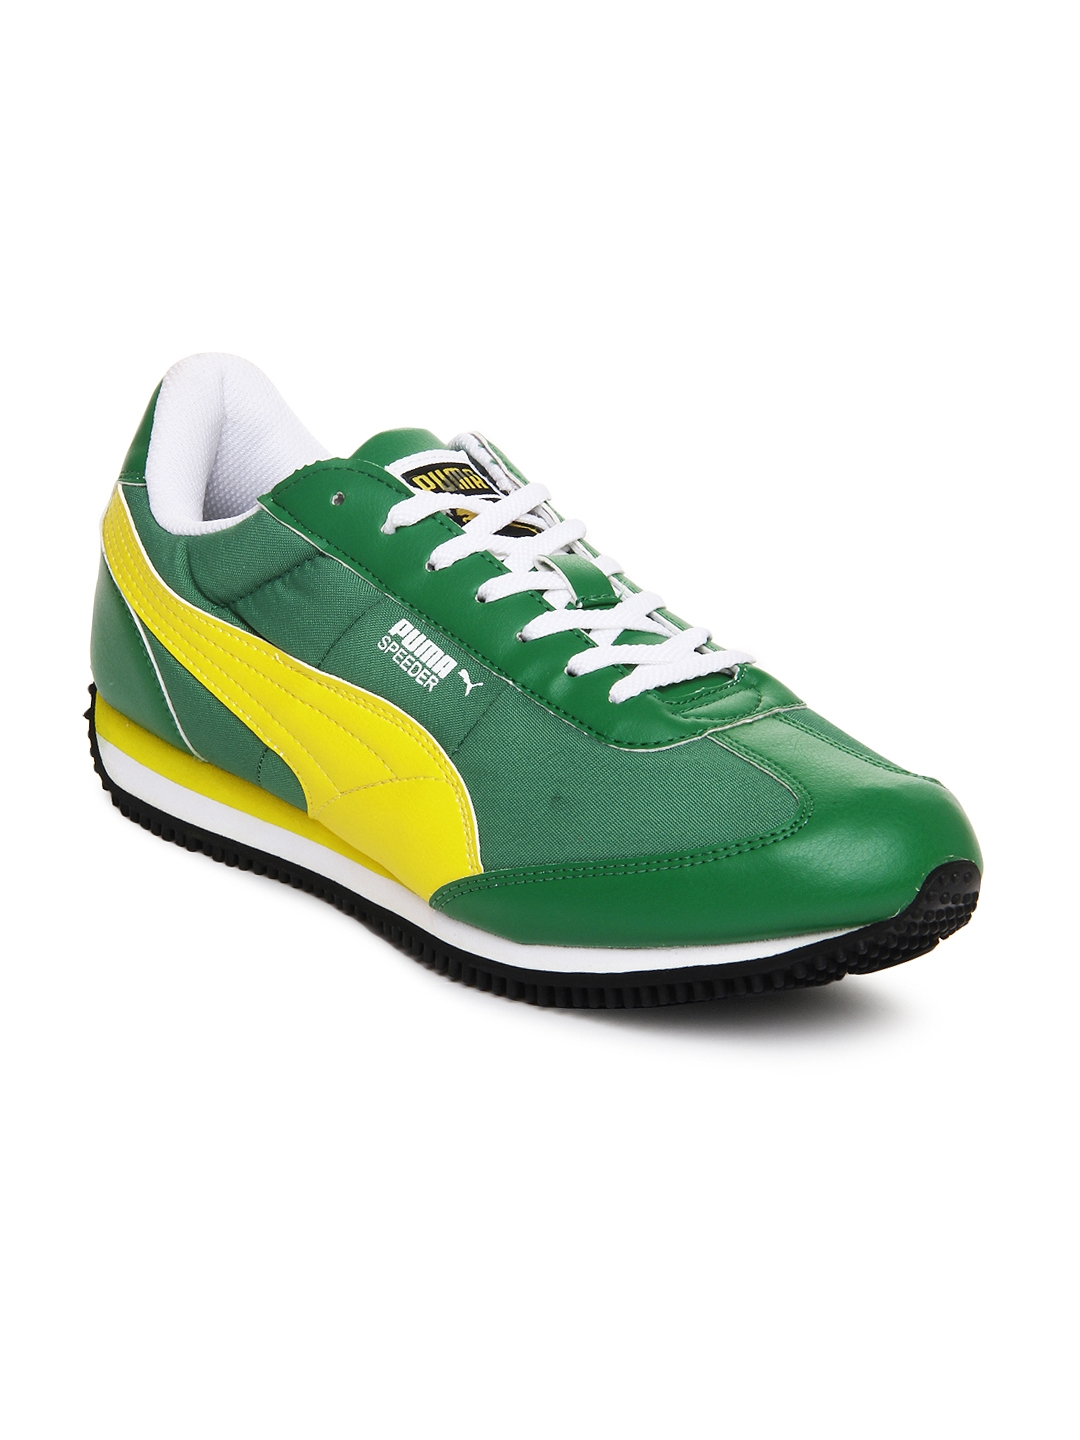 a5135d52b0b4 Buy Puma Men Green Speeder Tetron II Ind. Casual Shoes - Casual Shoes for  Men 171392